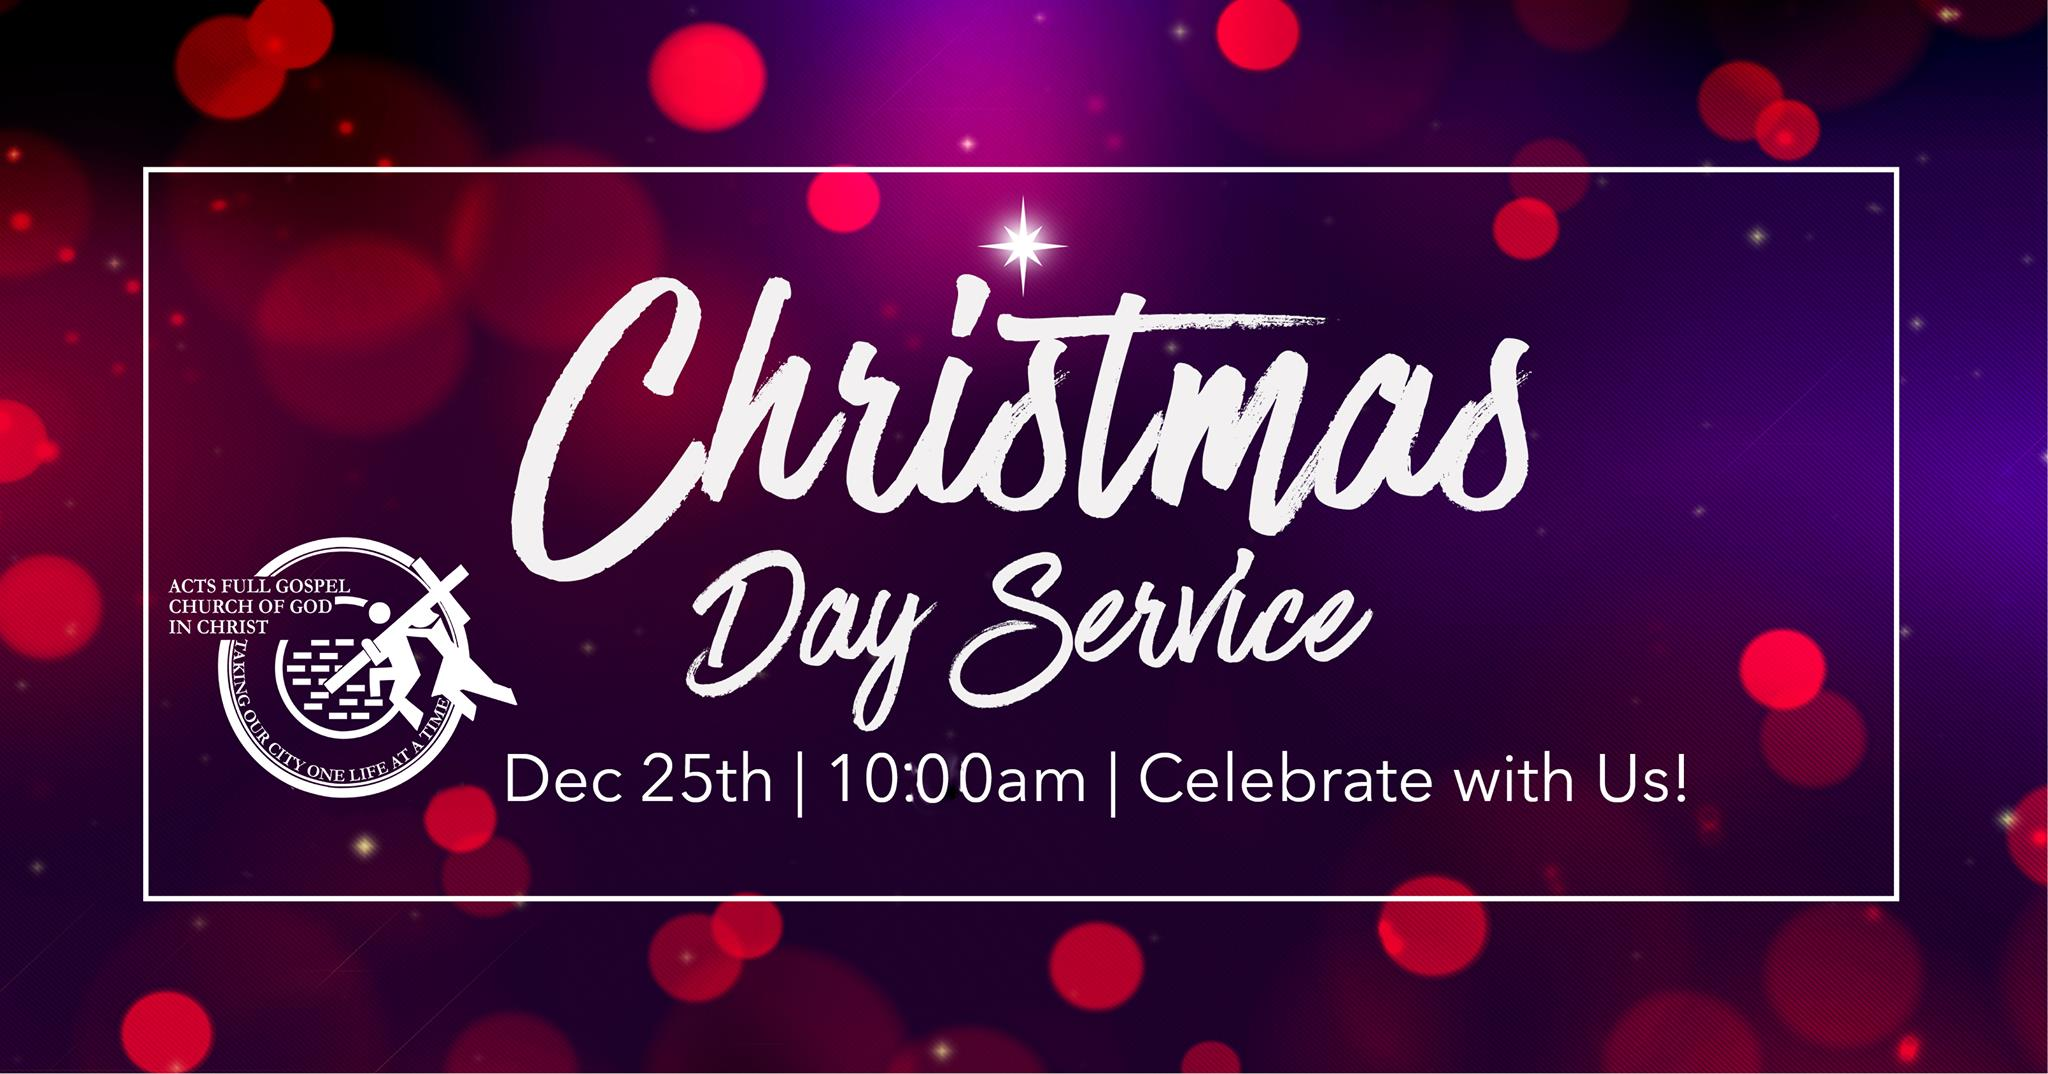 How To Add New Calendar In Google Calendar Events Google Calendar Get The New App For Android And Iphone Acts Full Gospel Cogic Christmas Day Service Faith In